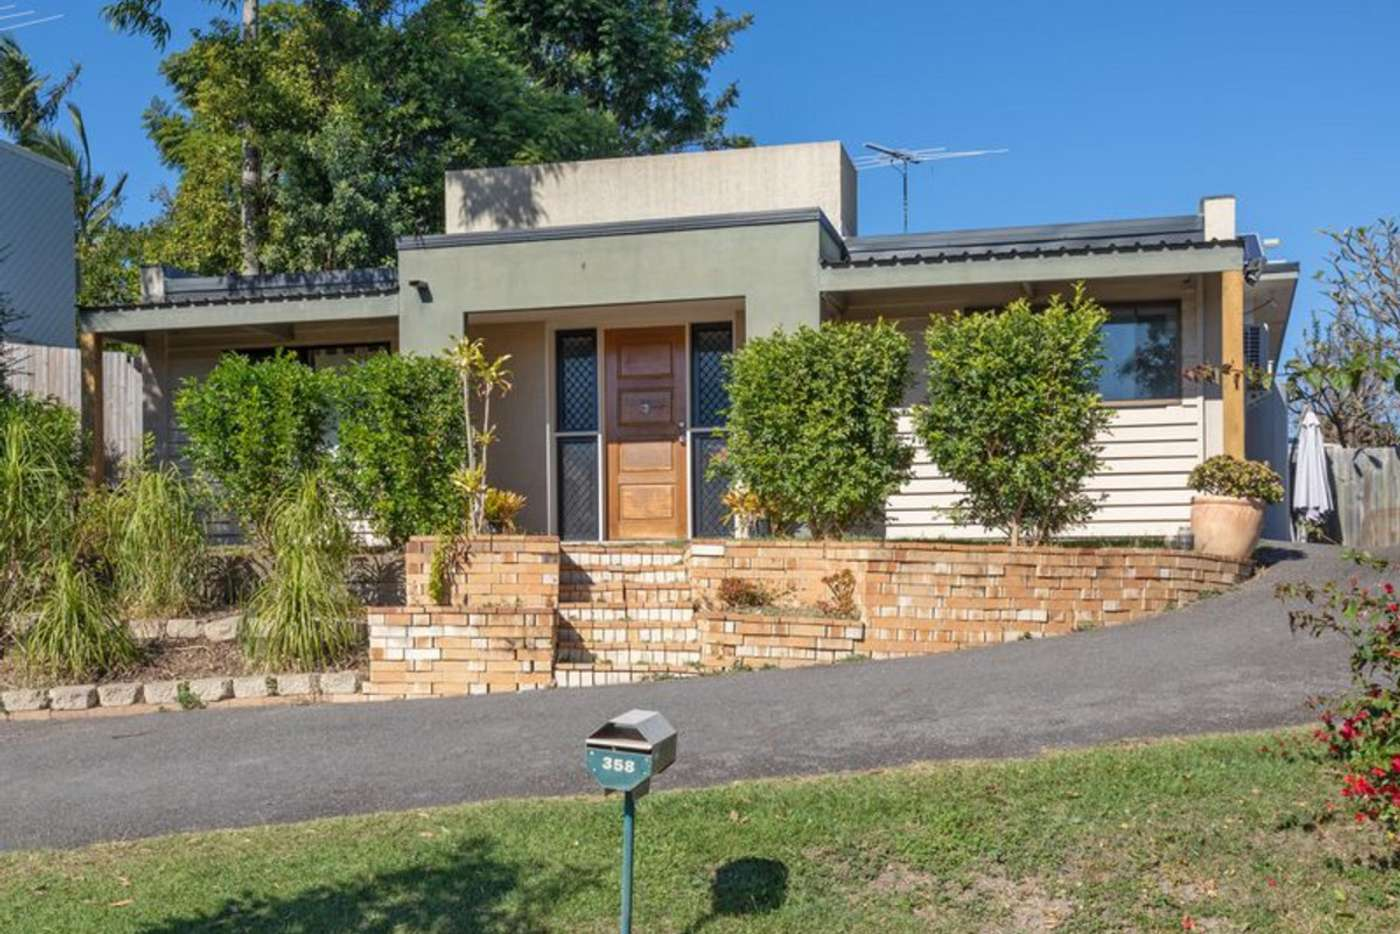 Main view of Homely house listing, 358 Sumners Road, Riverhills QLD 4074